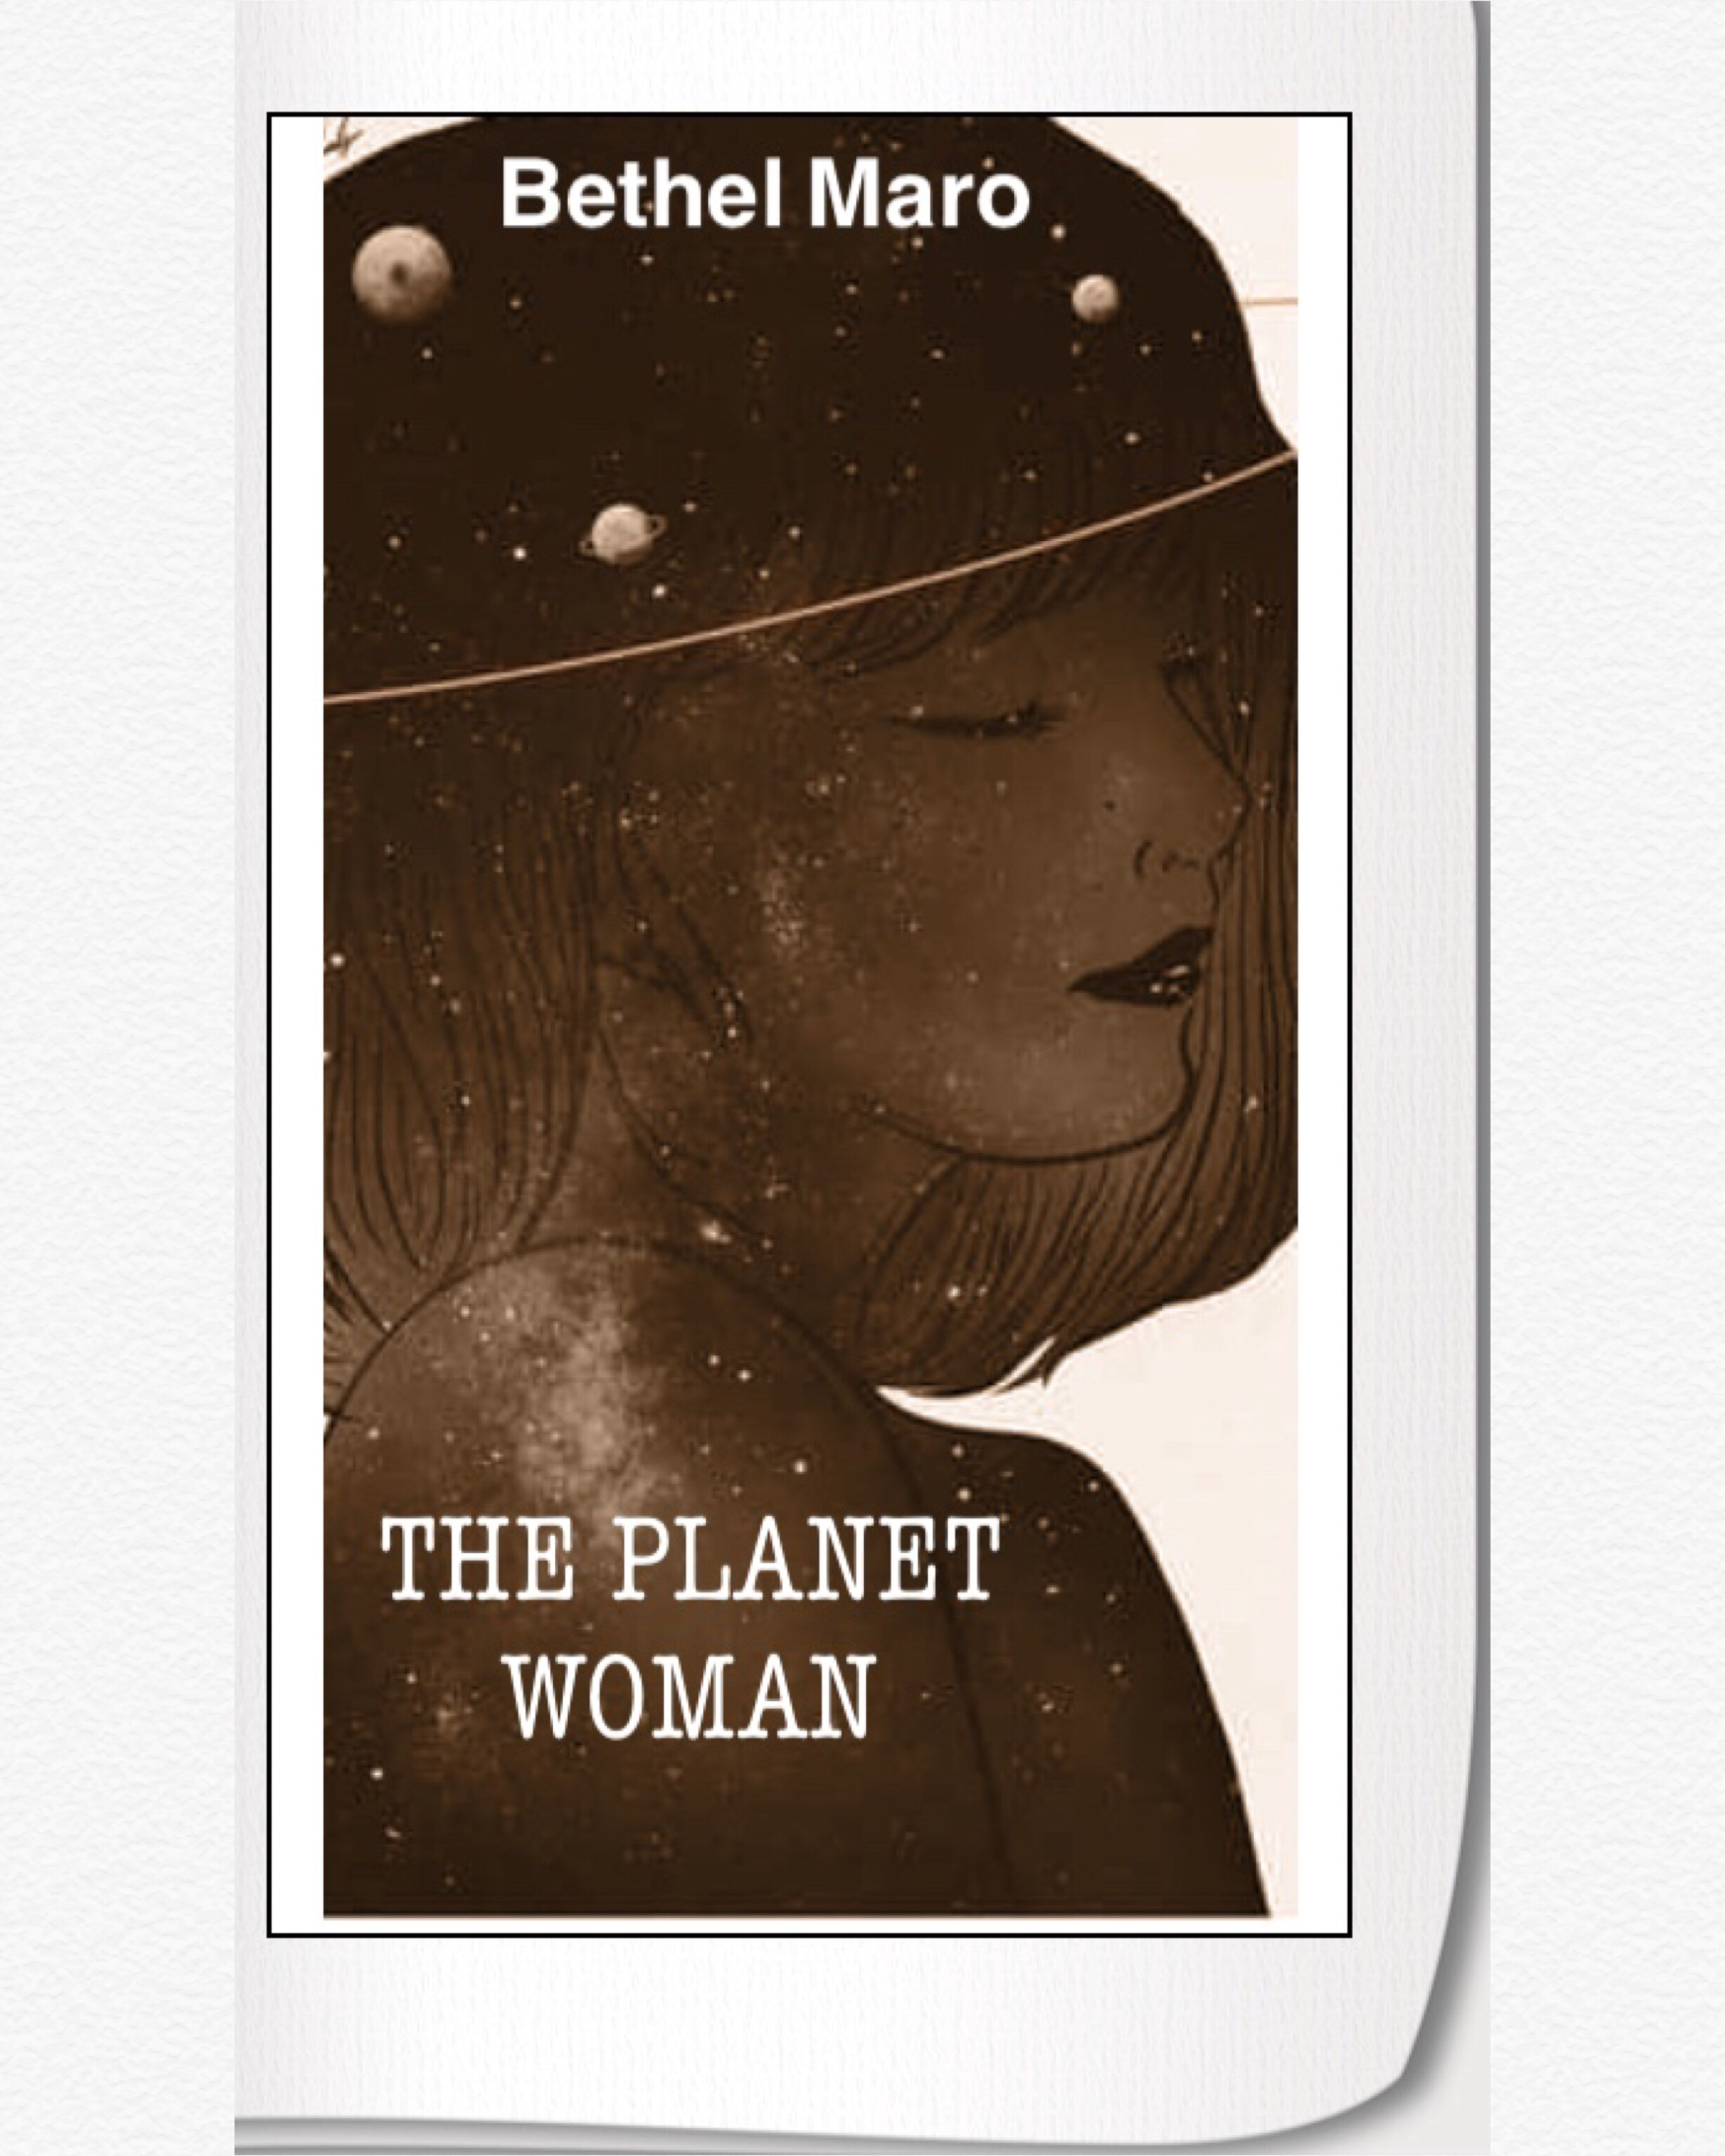 THE PLANET WOMAN